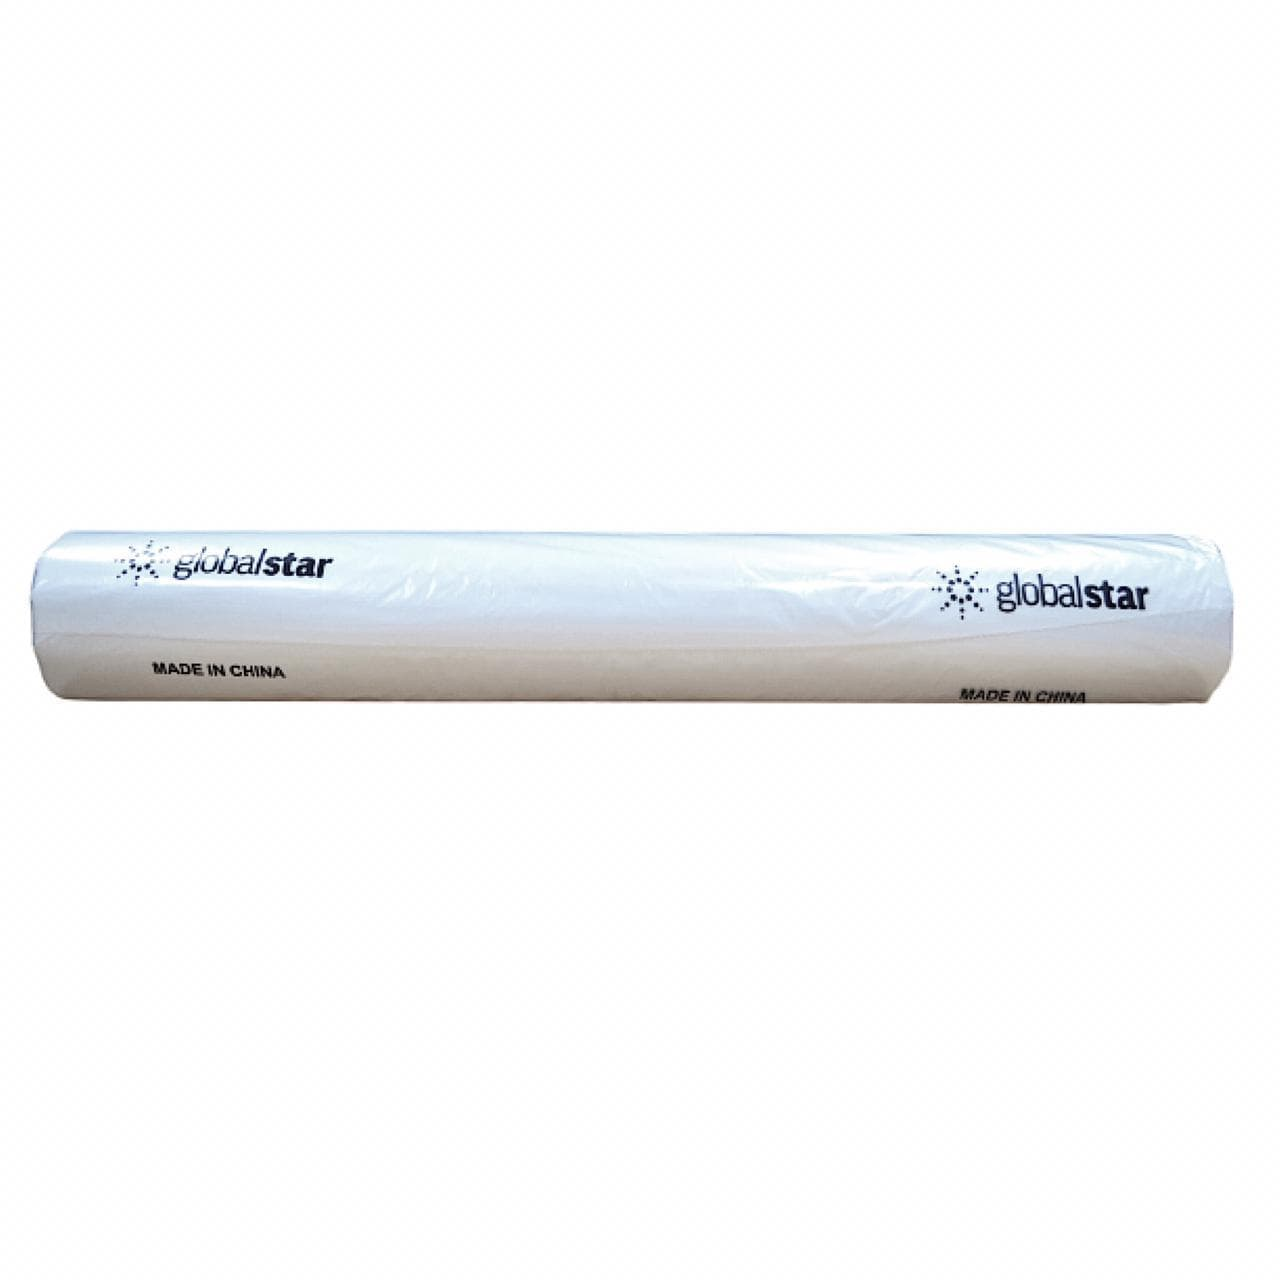 Globalstar Nylon Roll Color White 50 Sheets/roll - DC601